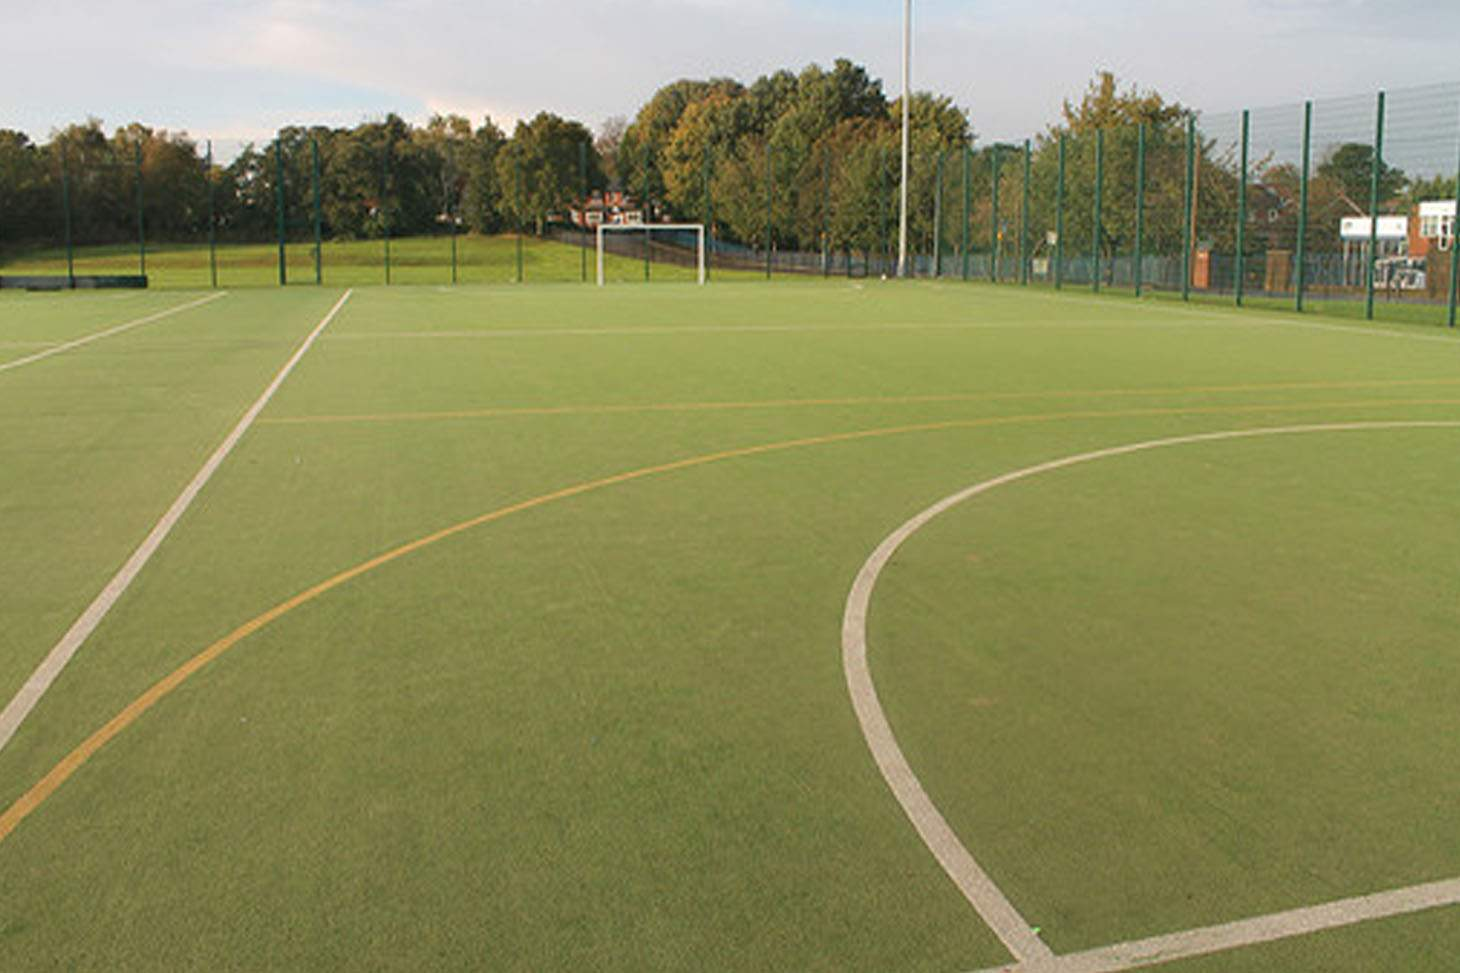 St. James's C of E High School 5 a side | Astroturf football pitch